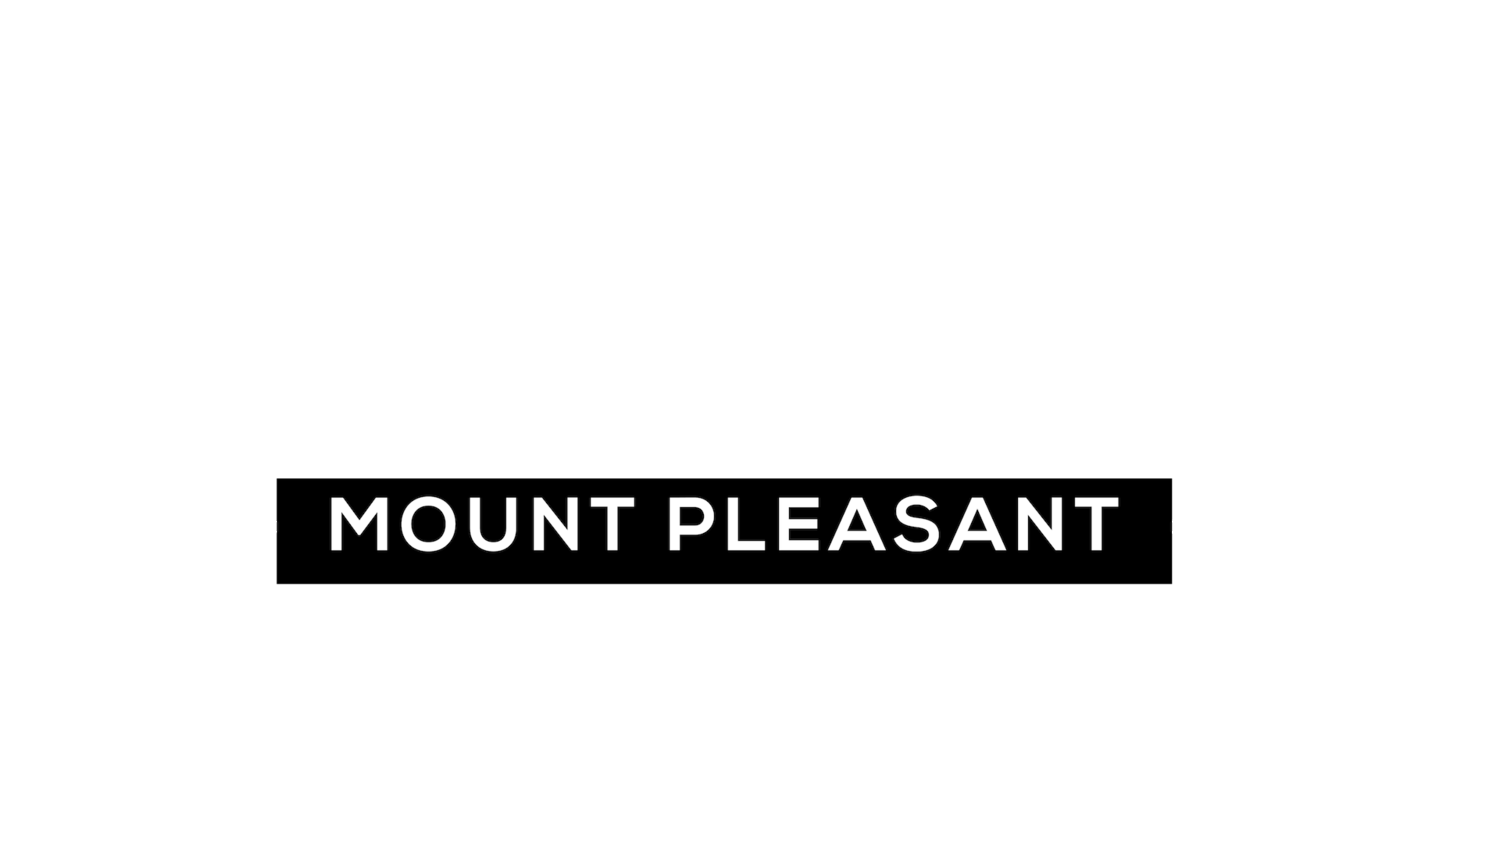 MethodRide - Complete Body Cycle Studio in Mt. Pleasant, SC